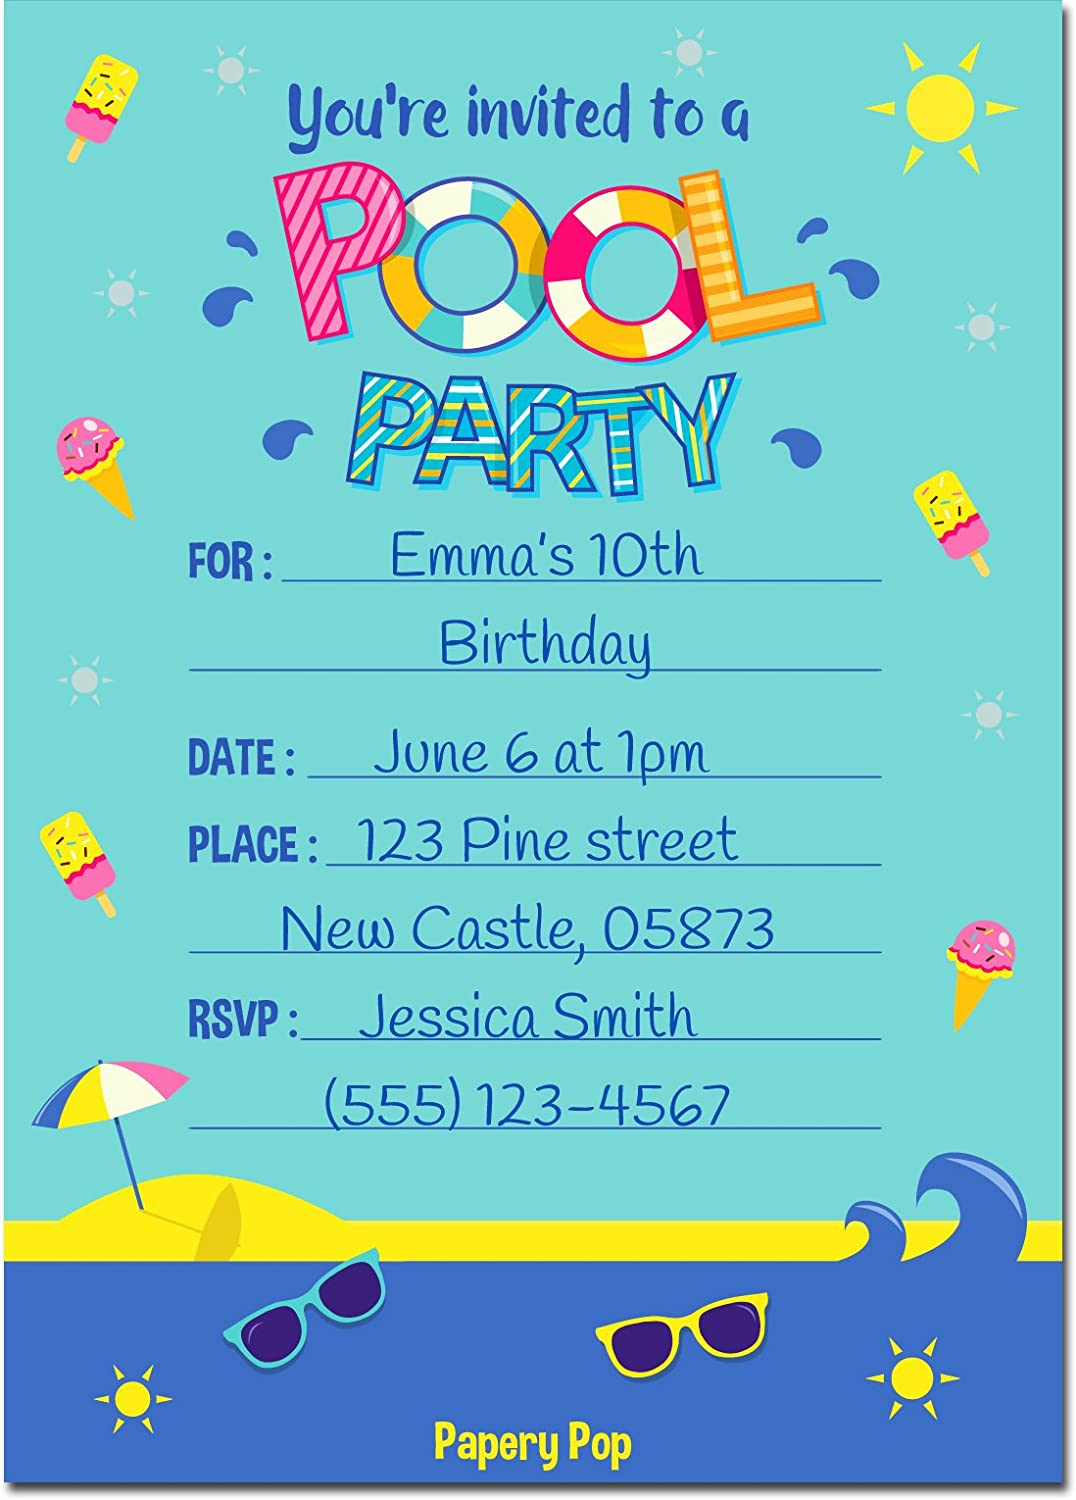 Amazon.com: Pool Party Invitations with Envelopes (15 Count) - Kids ...